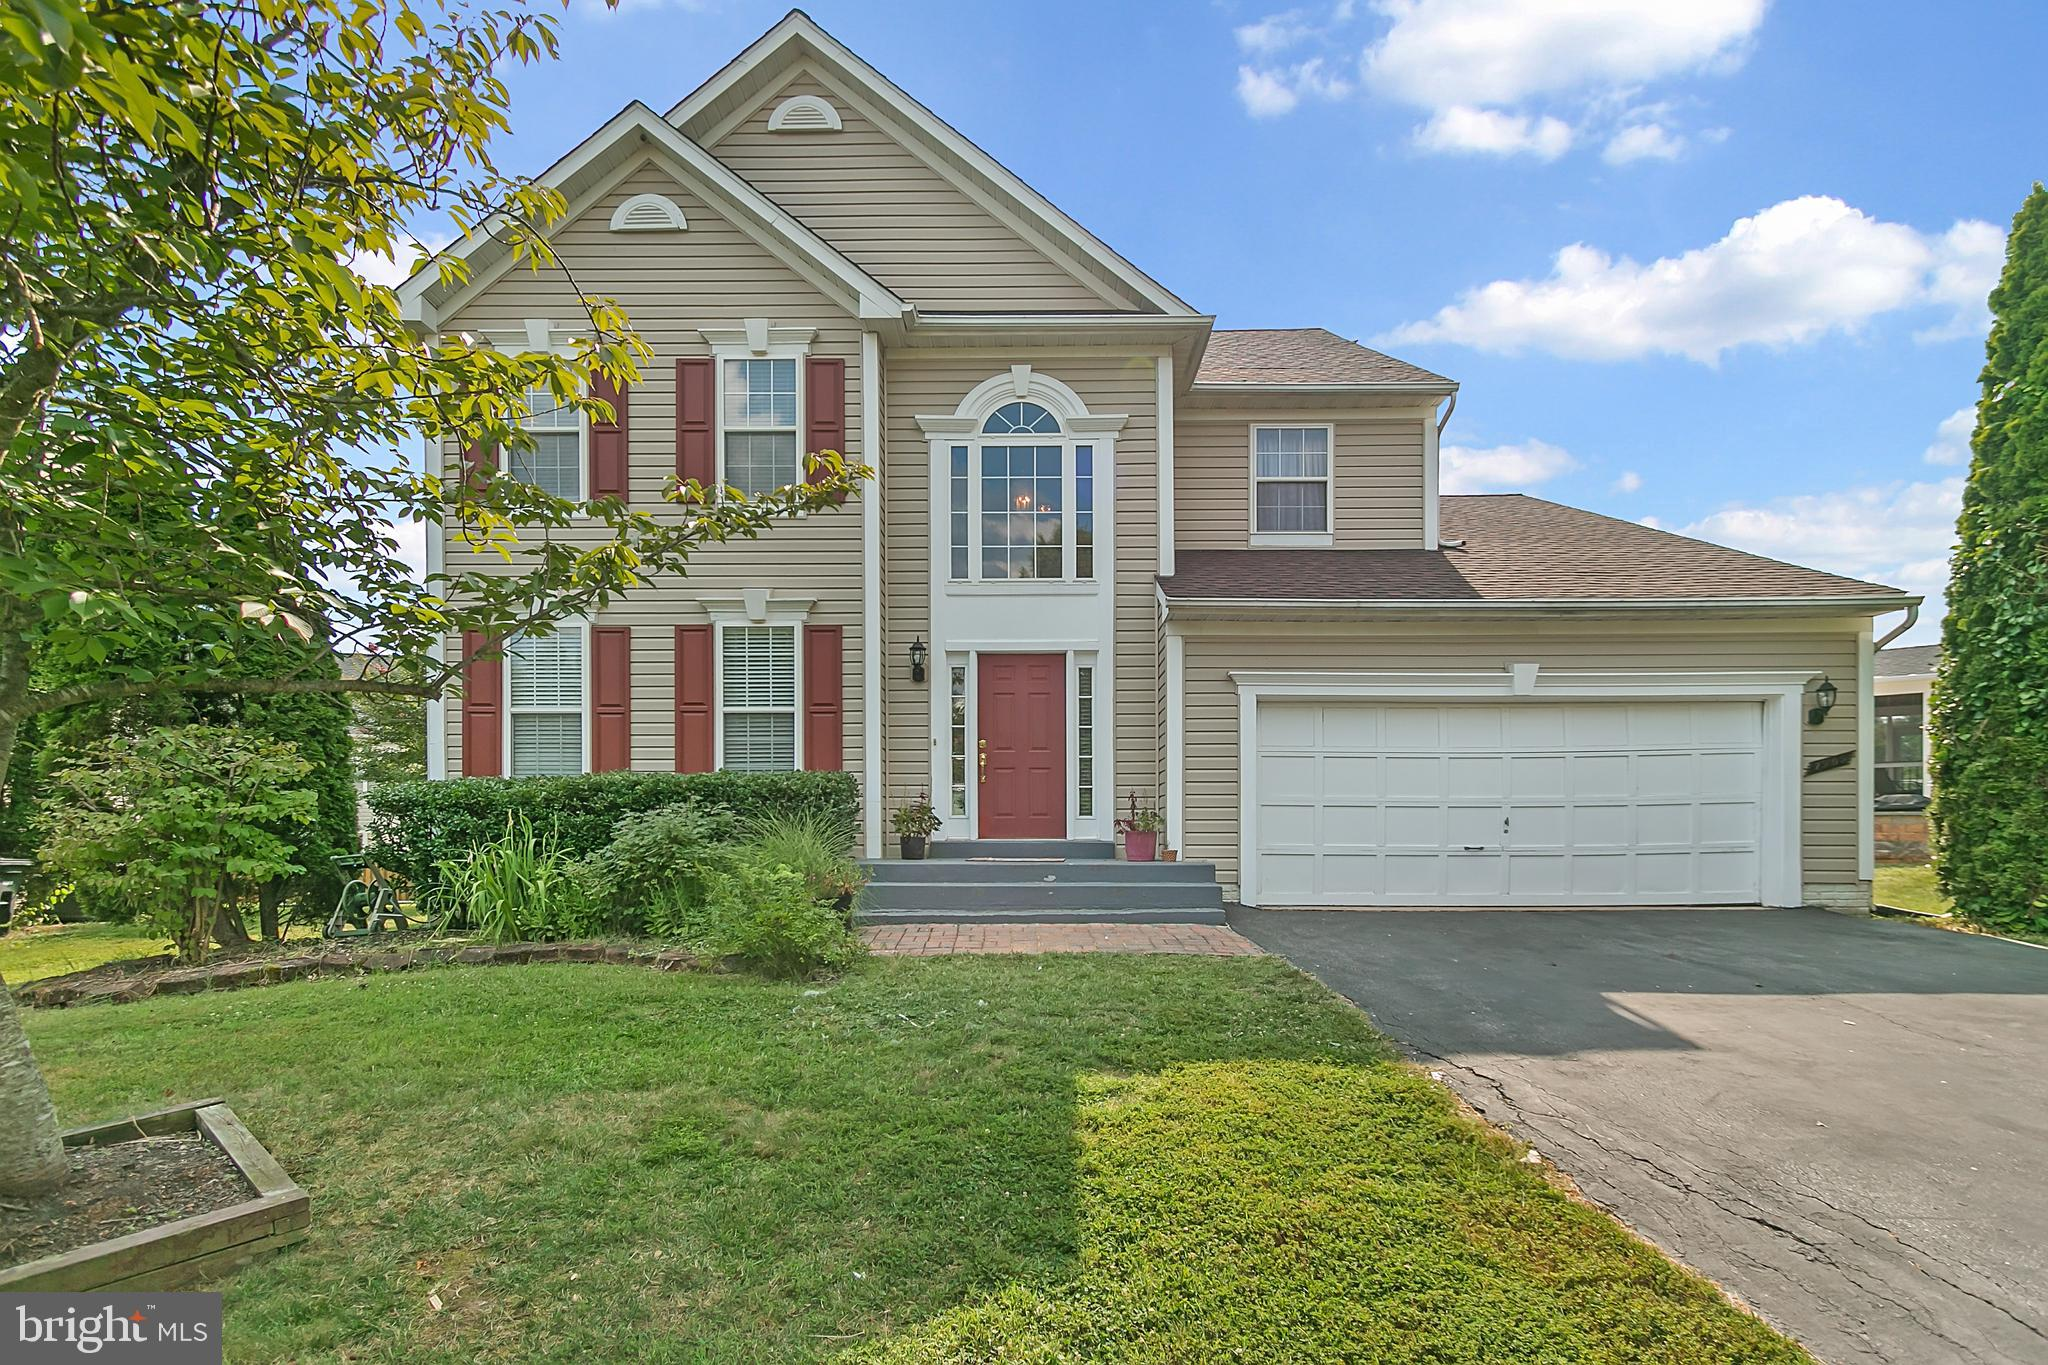 7202 BAY WOOD DRIVE, LANHAM, MD 20706